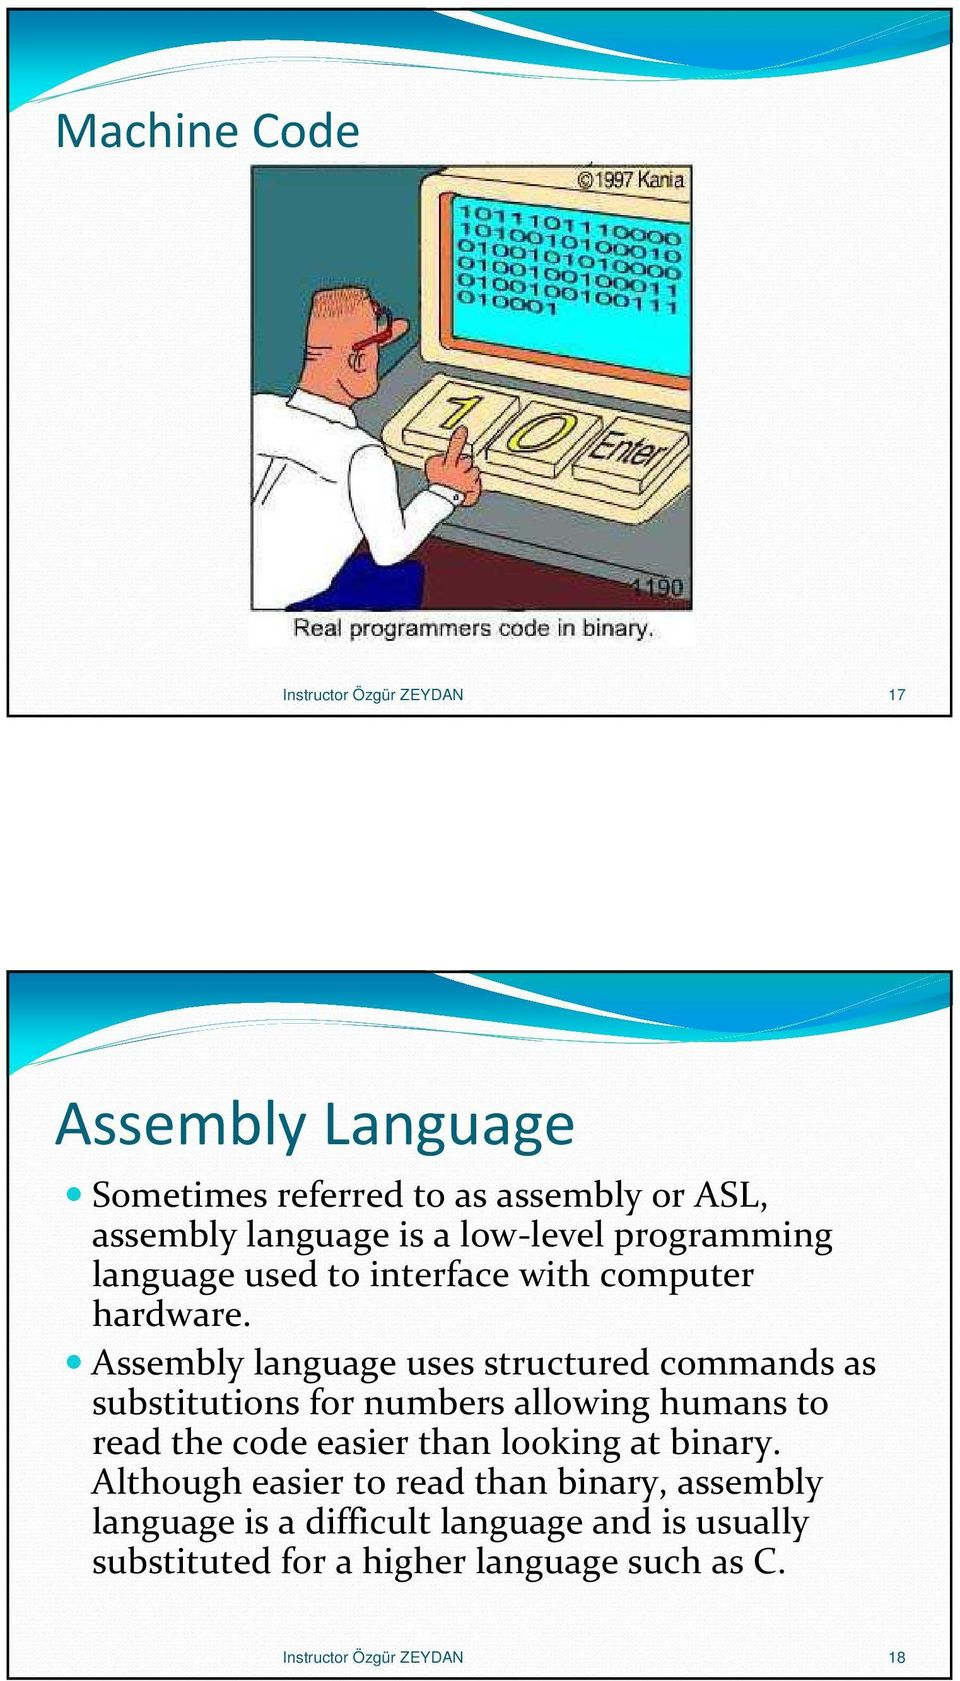 Assembly language uses structured commands as substitutions for numbers allowing humans to read the code easier than looking